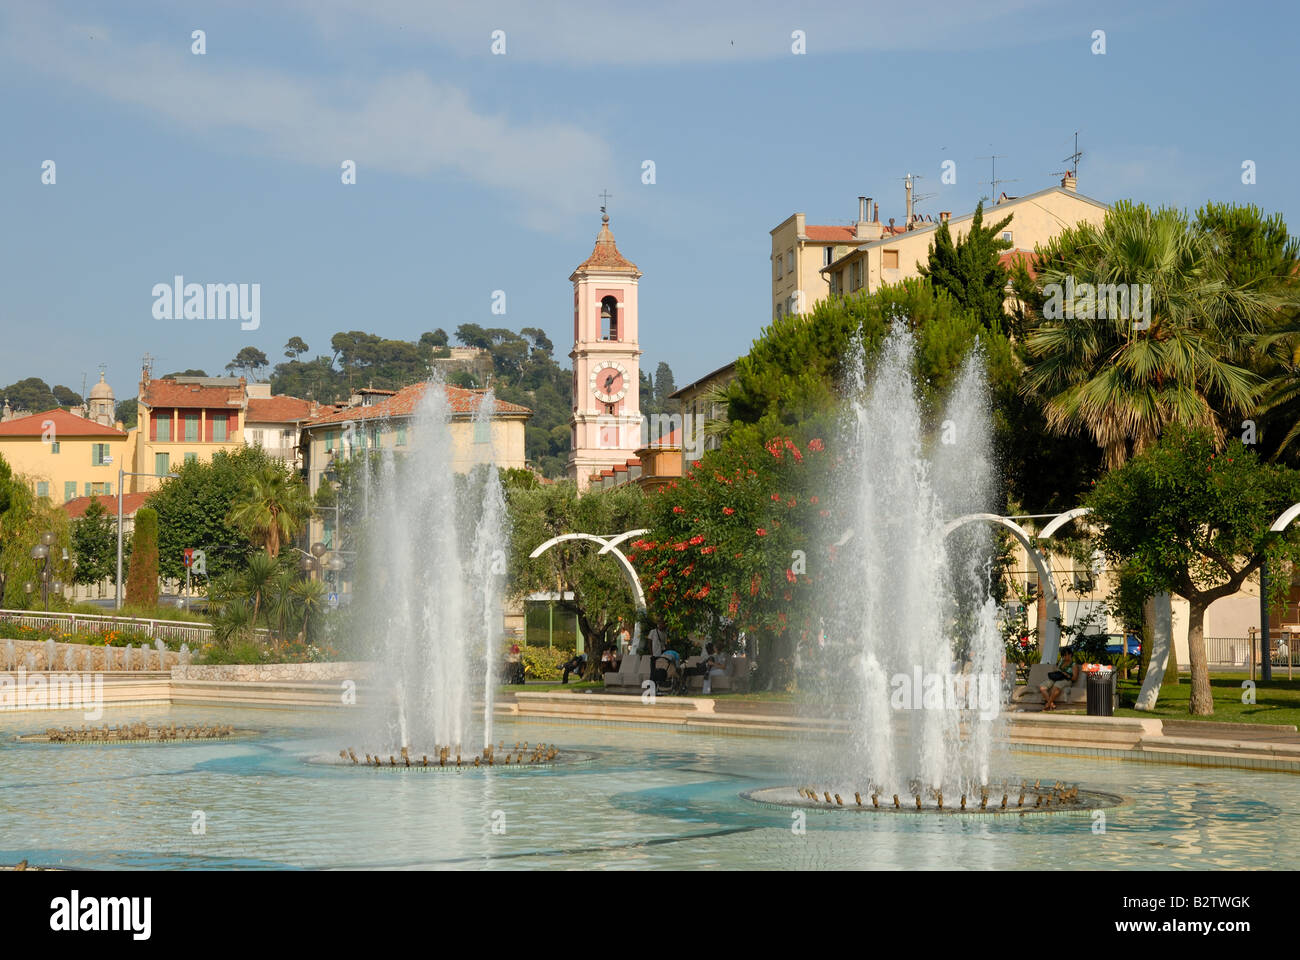 Fountains at Massena Square in Nice, France Stock Photo